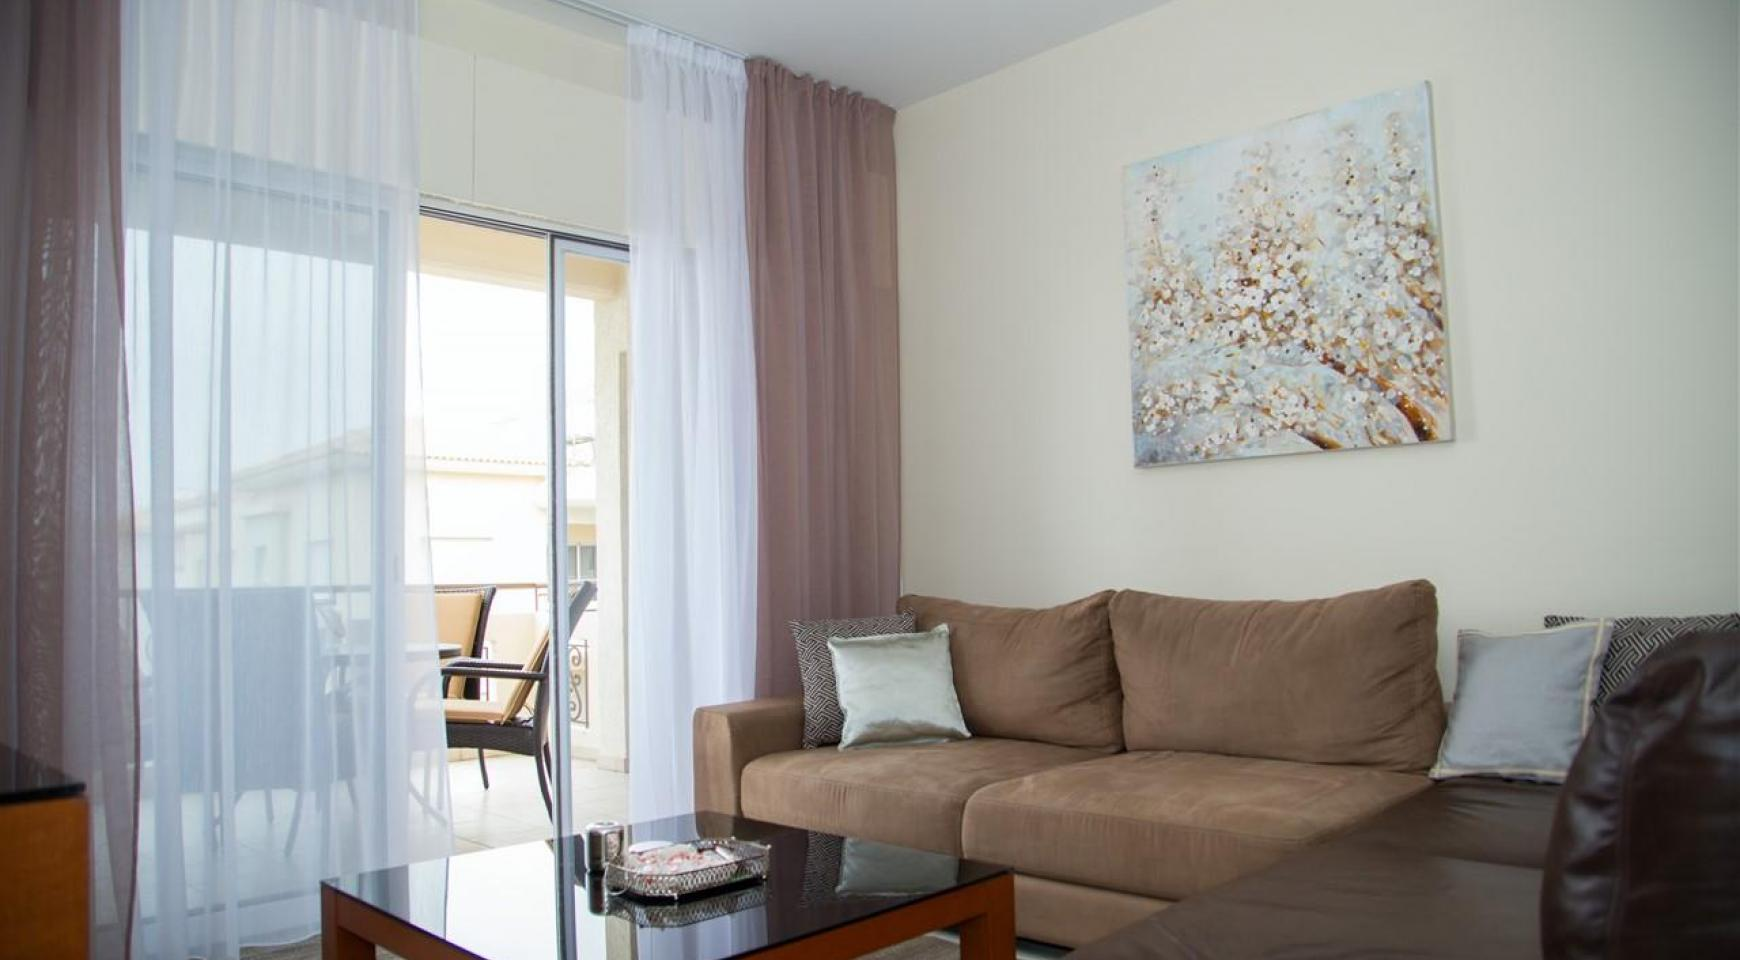 2 Bedroom Apartment Mesogios Iris 304 in the Complex near the Sea - 4